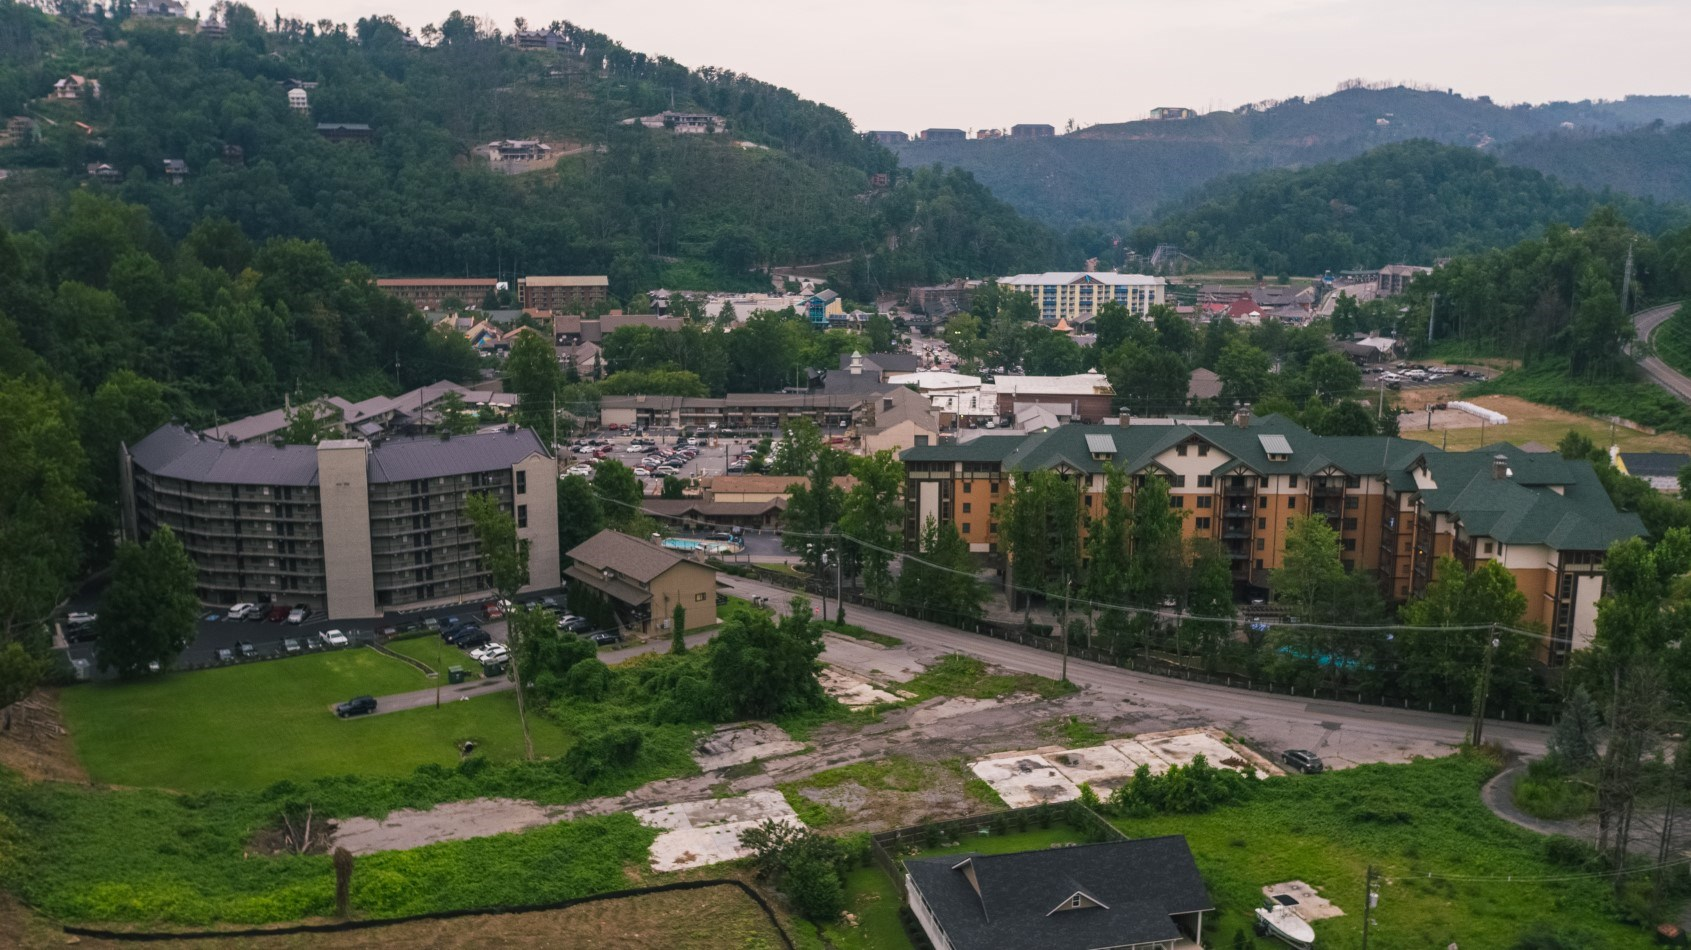 Commercial And Business Lots For Auction In Gatlinburg TN